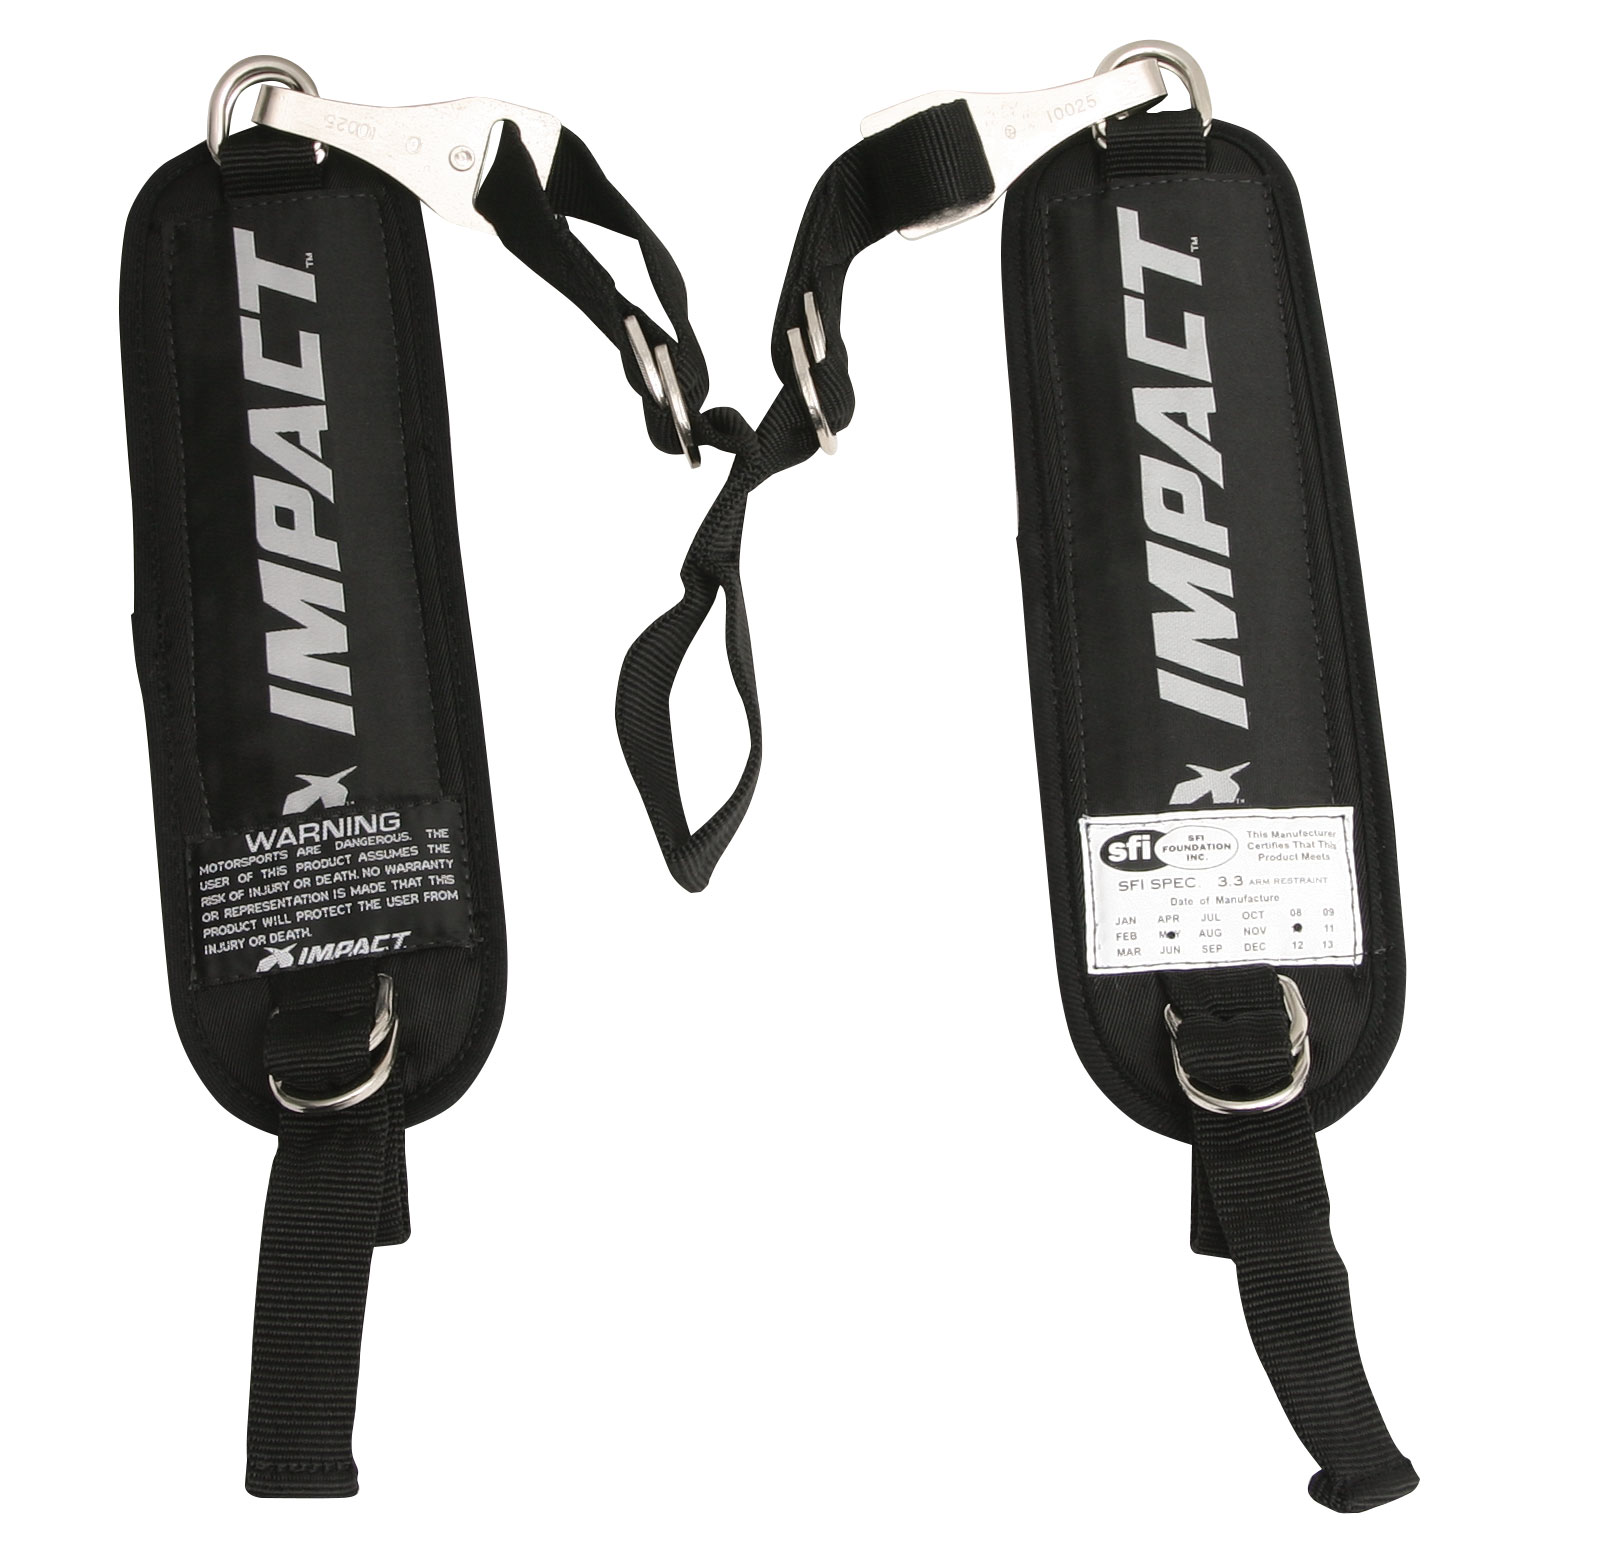 IMPACT RACING 75000910 Black Adult Y-Strap Arm Restraint Harness Kit